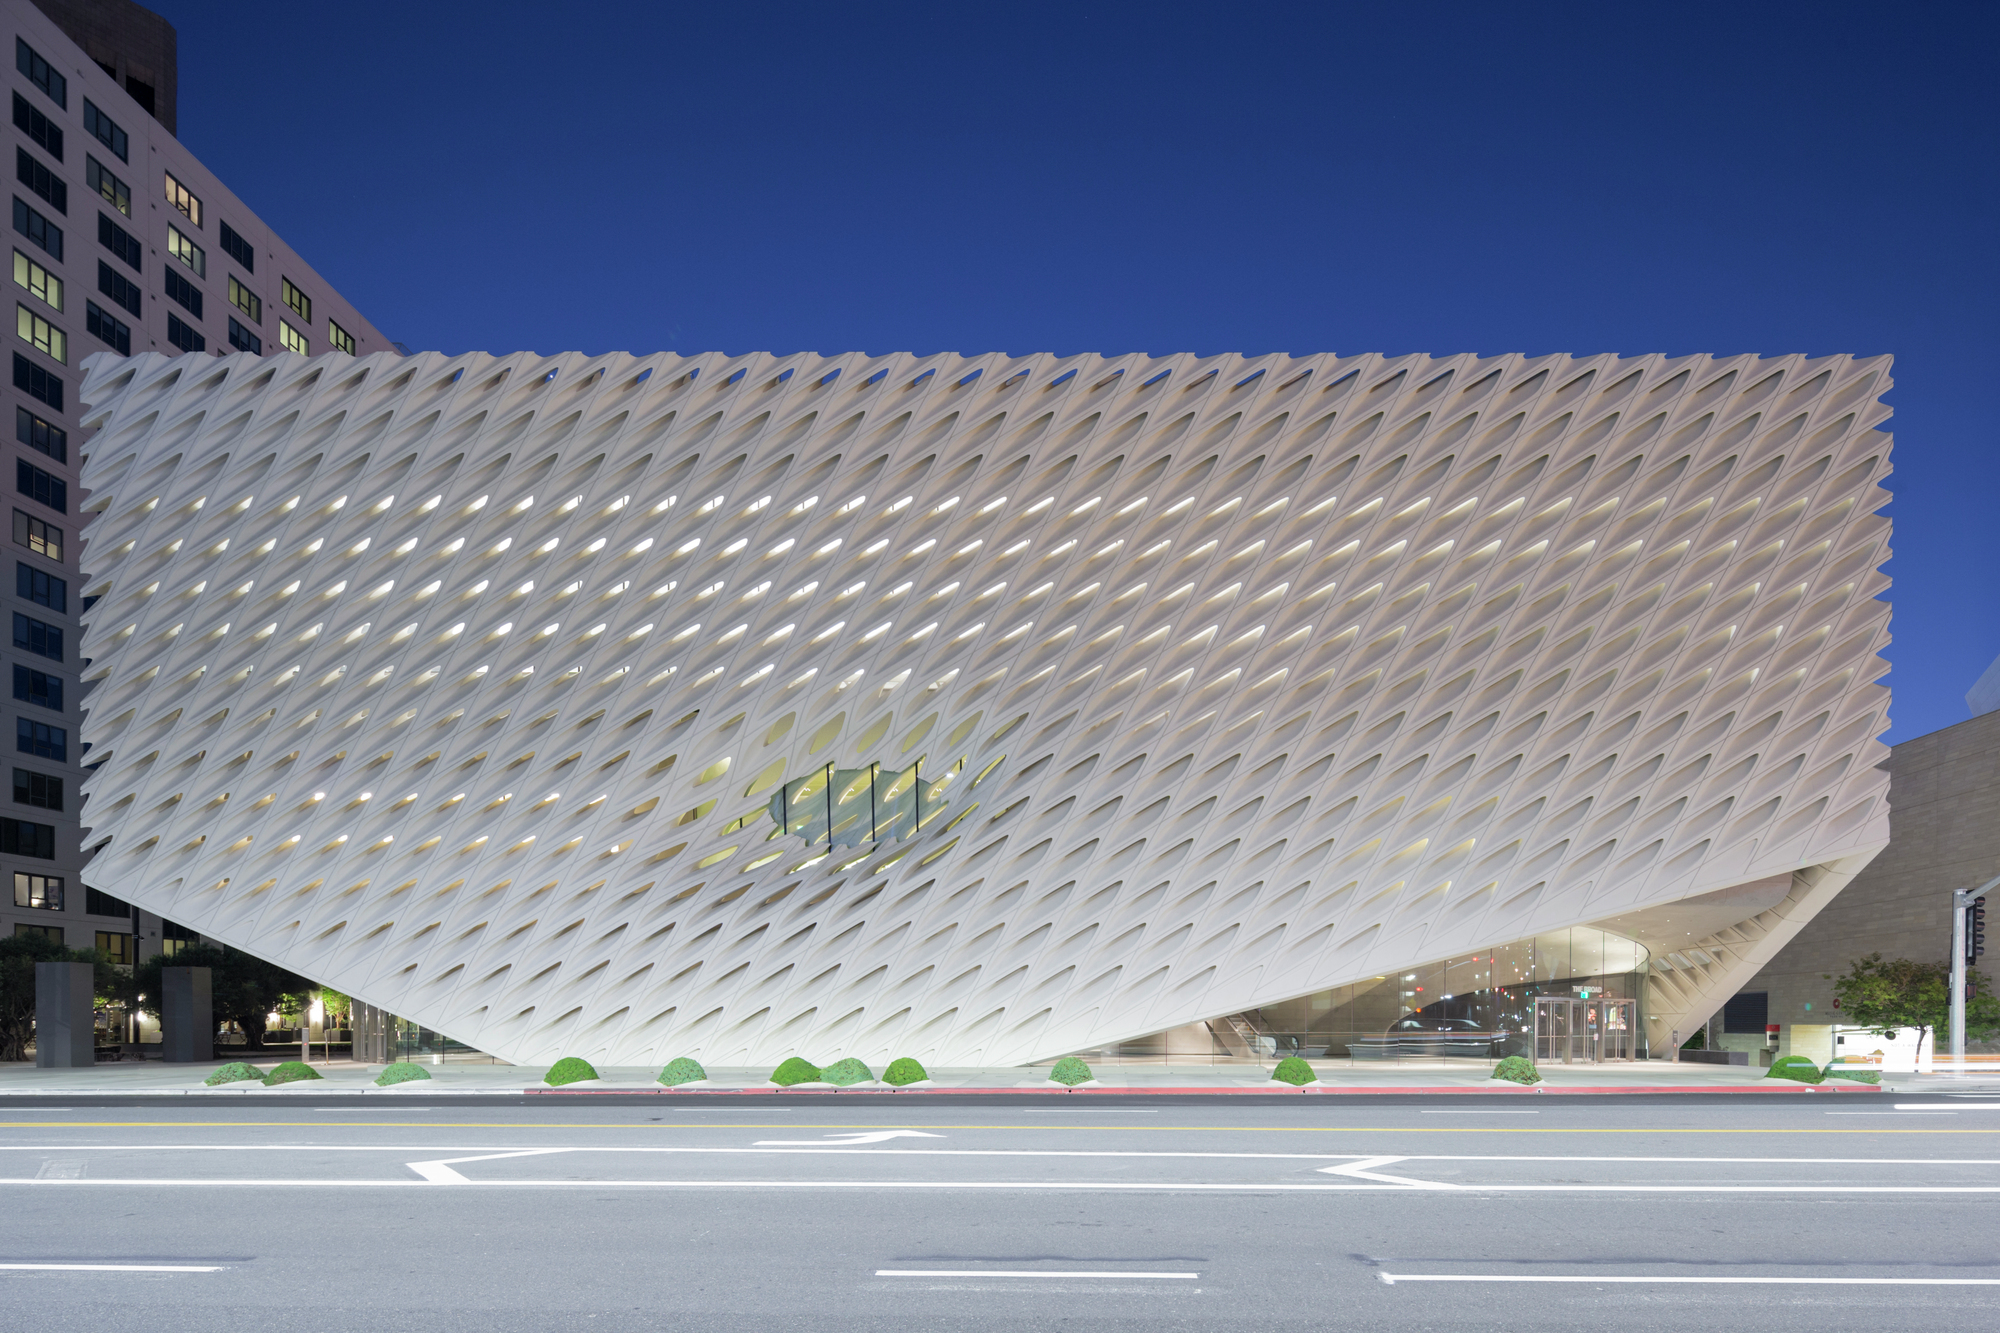 Critical Round-Up: Diller Scofidio + Renfro's Broad Museum